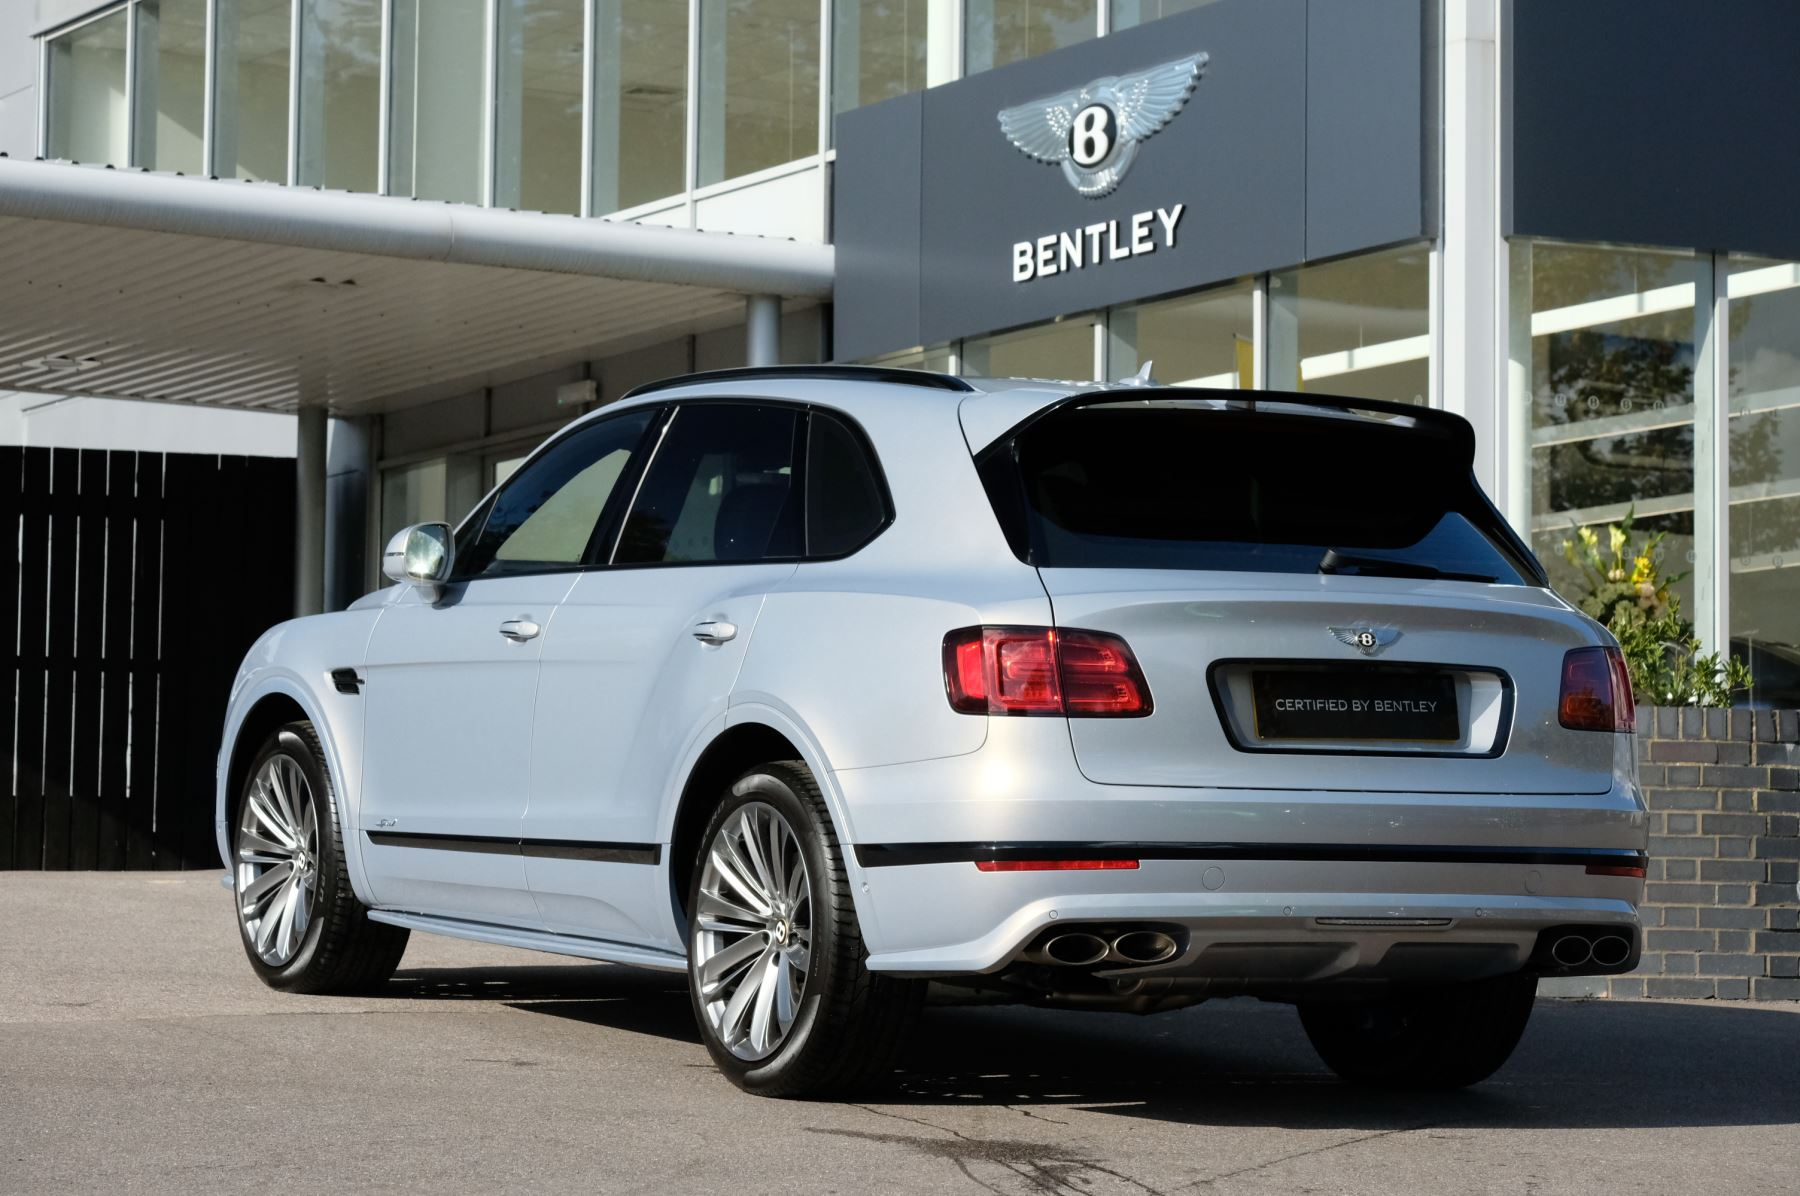 Bentley Bentayga 0.0 Speed - City and Touring - 7 Seat Specification